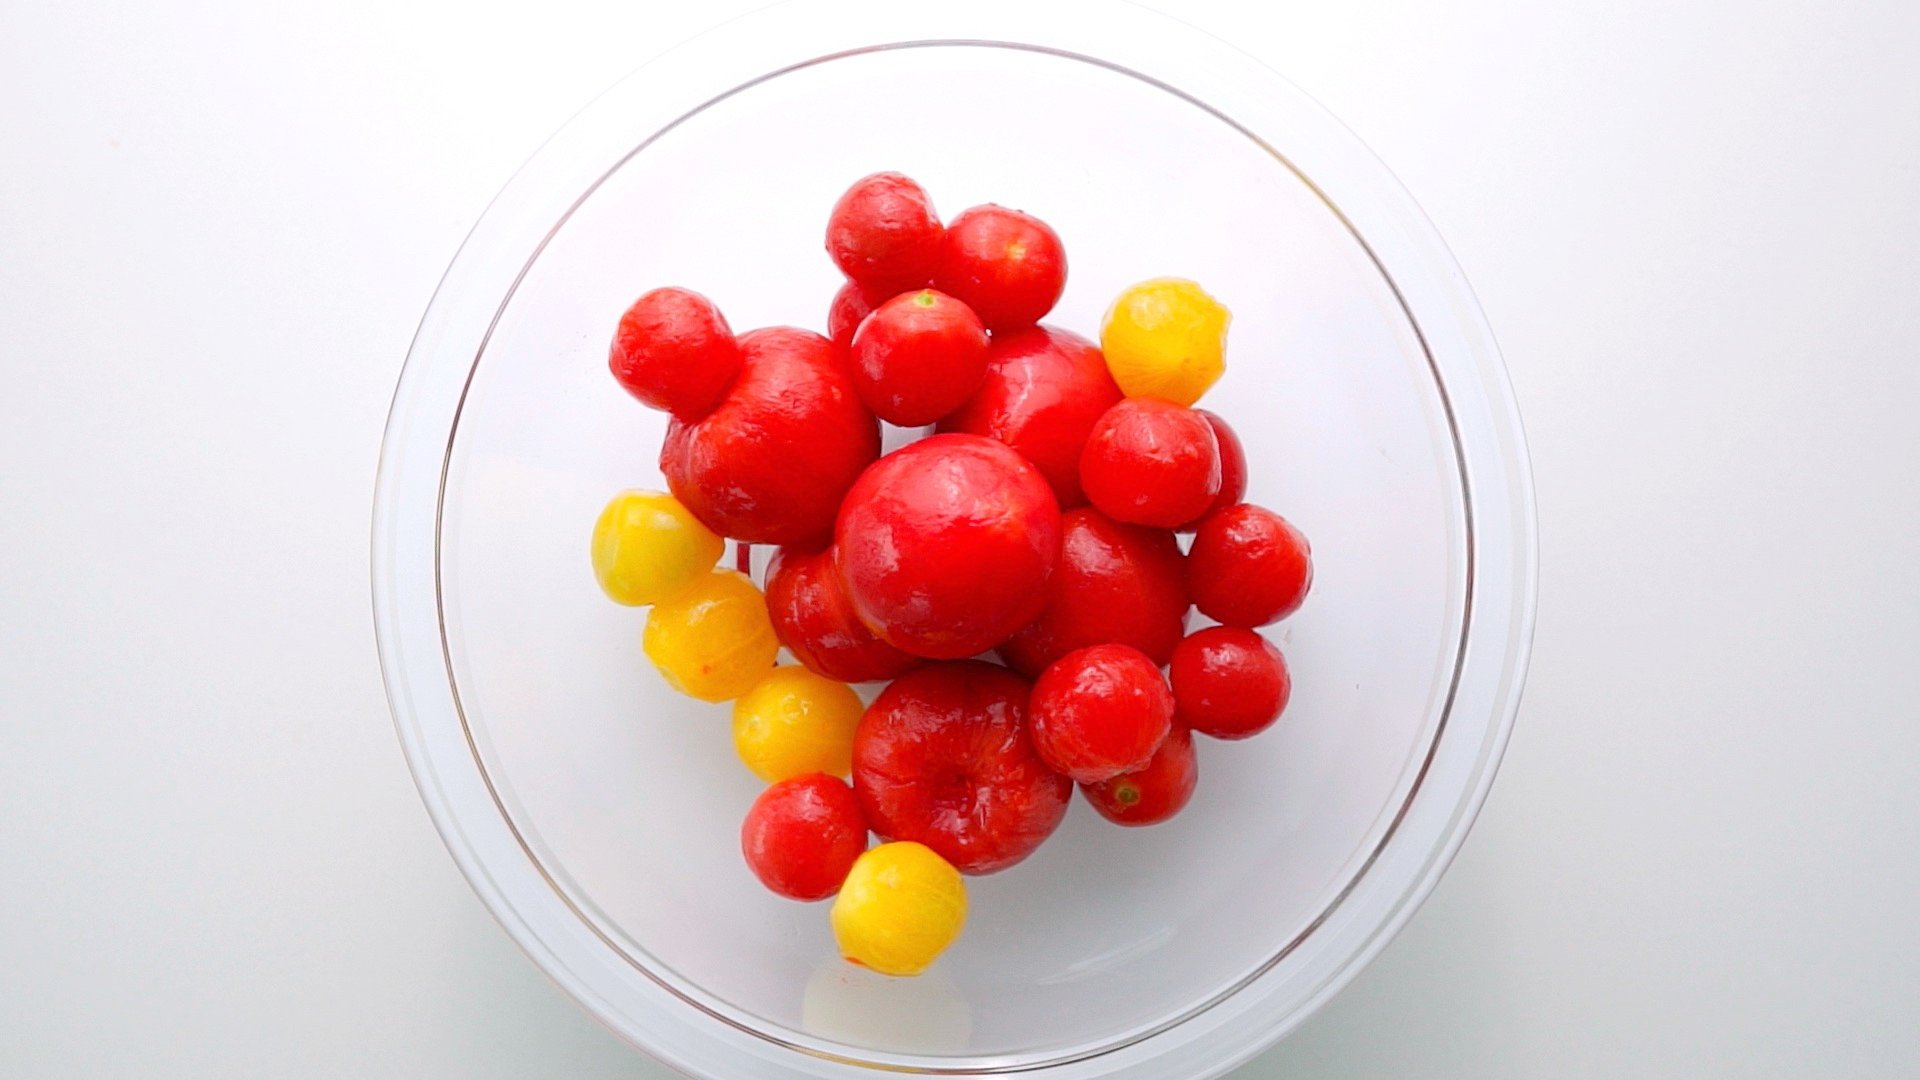 Overhead shot of a bowl of peeled tomatoes.